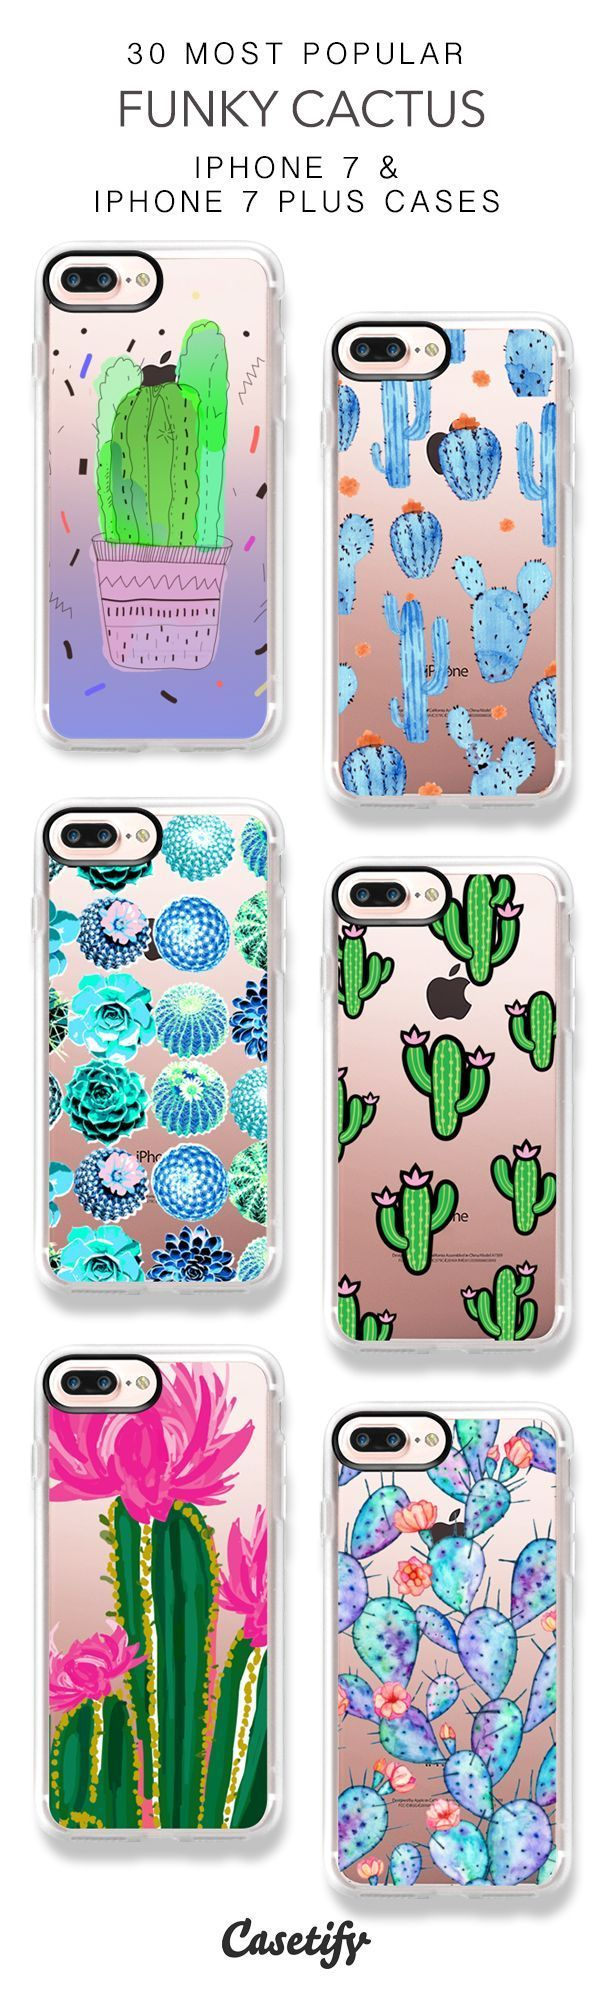 30 Most Popular Funky Cactus iPhone 7 Cases and iPhone 7 Plus Cases. More Protective Plant iPhone case here > https://www.casetify.com/collections/top_100_designs#/?vc=QuaLD8eJXk #iphone7case,